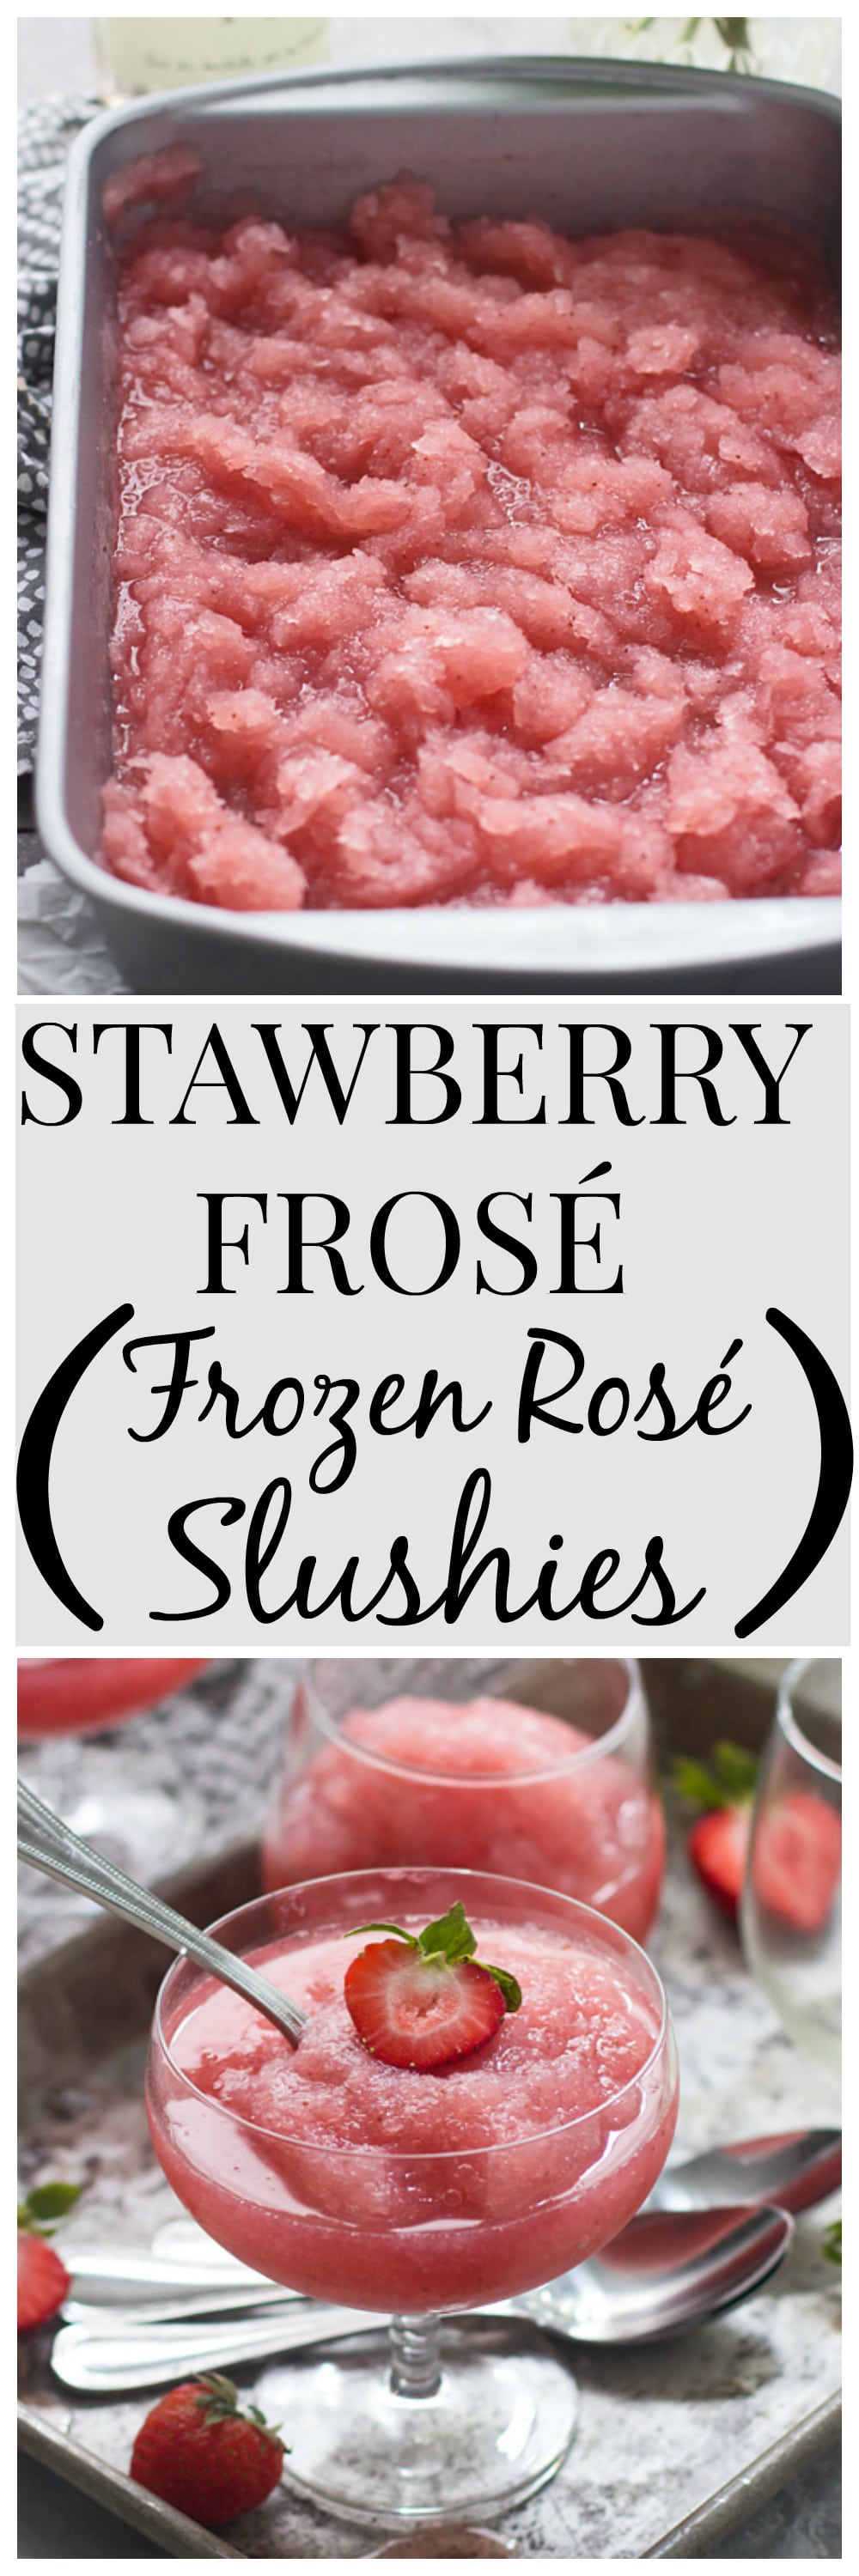 Strawberry Frosé (Frozen Rosé Slushies) - The ONLY drink you'll want for the rest of summer!